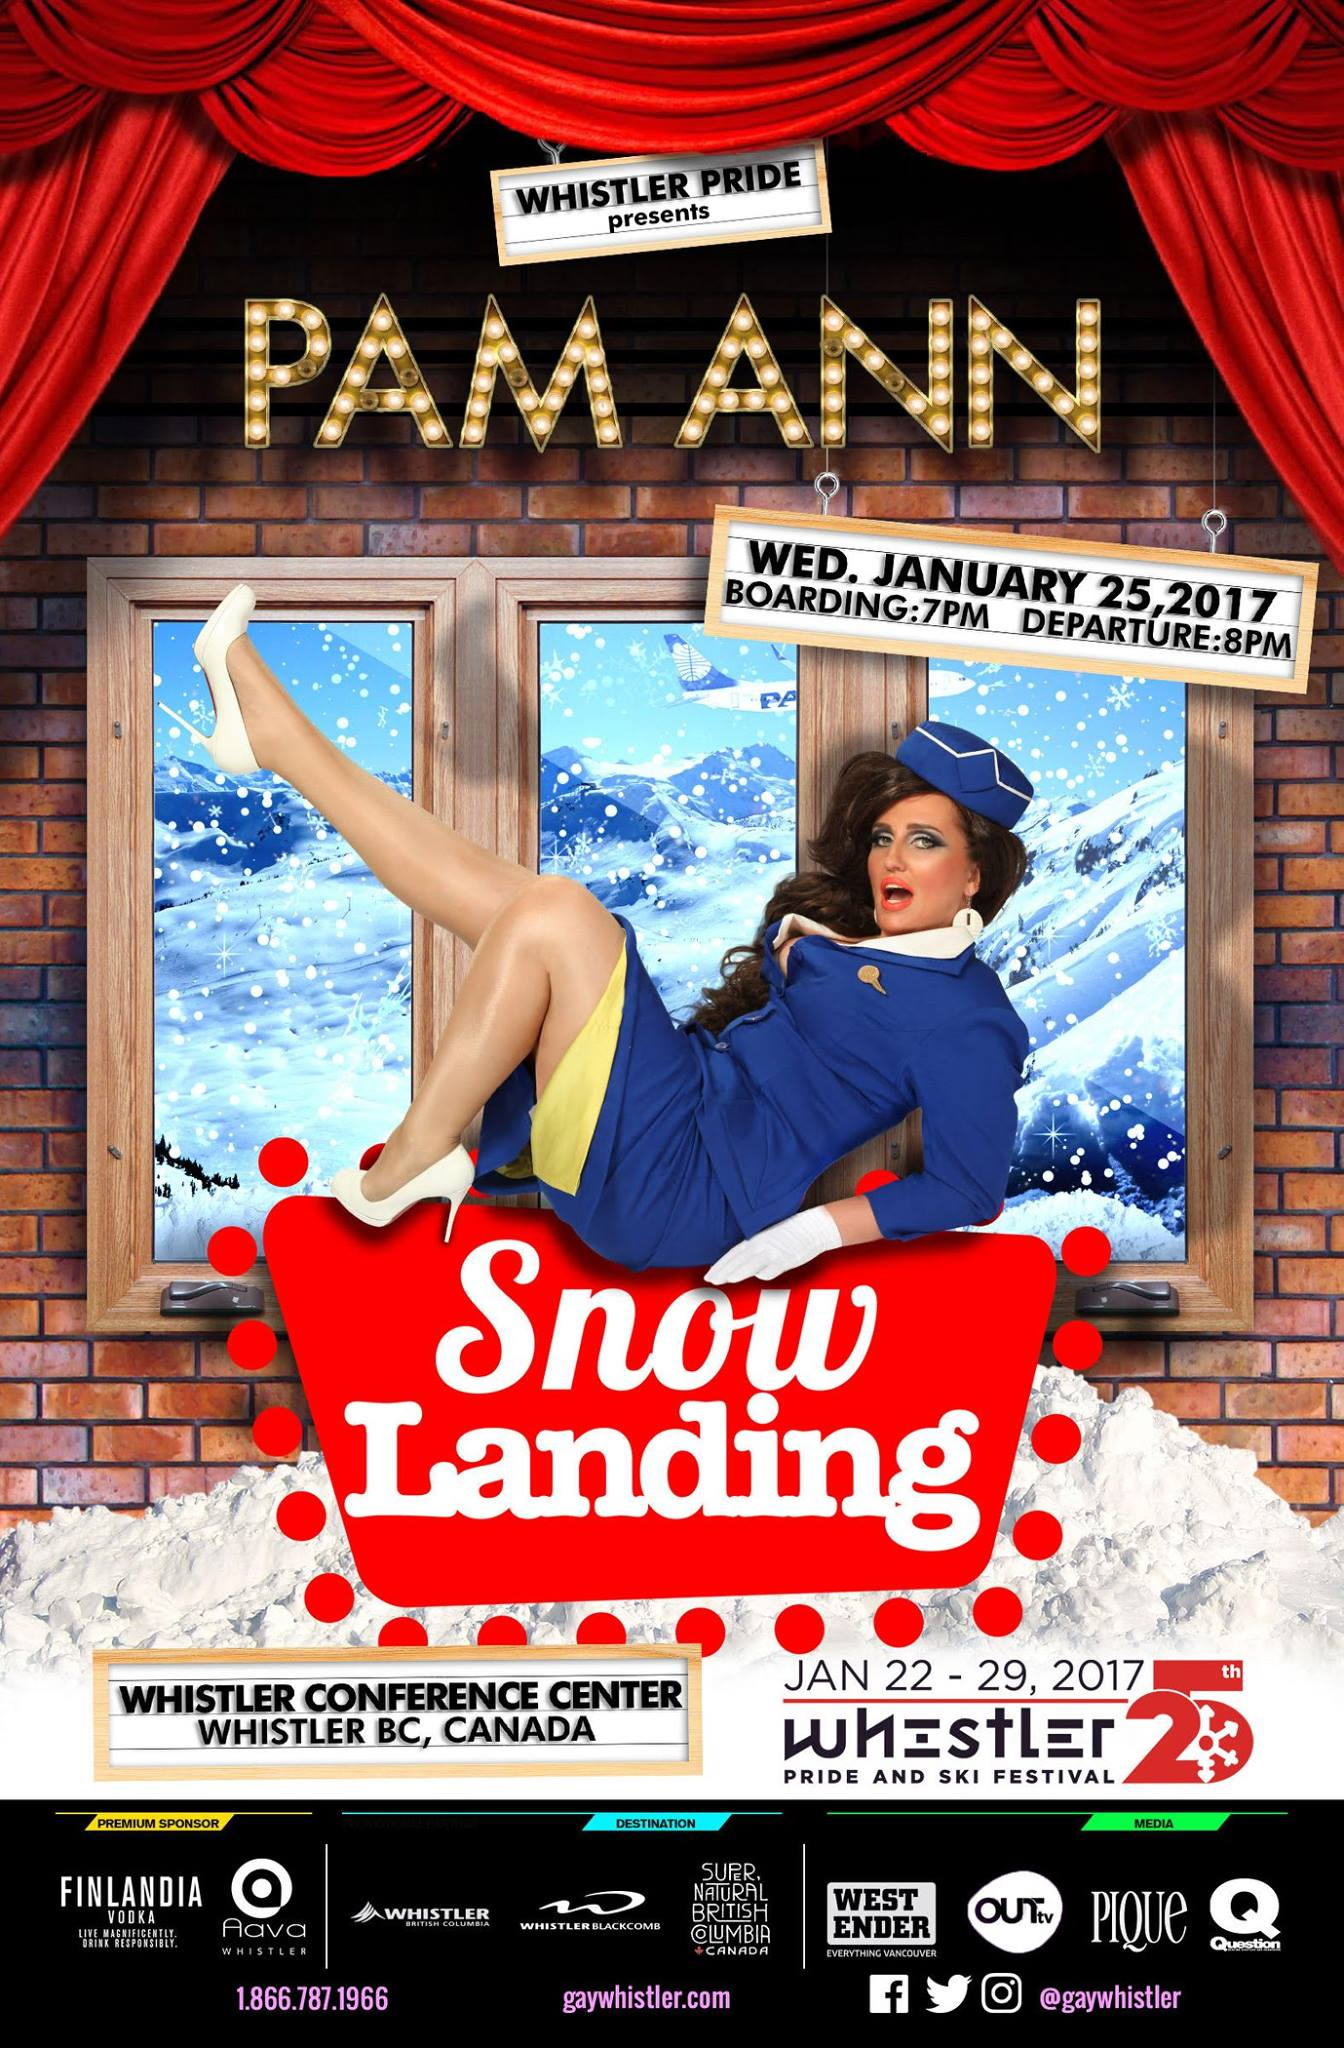 Pam Ann is headlining at Whistler Pride and Ski Festival 2017 (Pam Ann/Facebook)